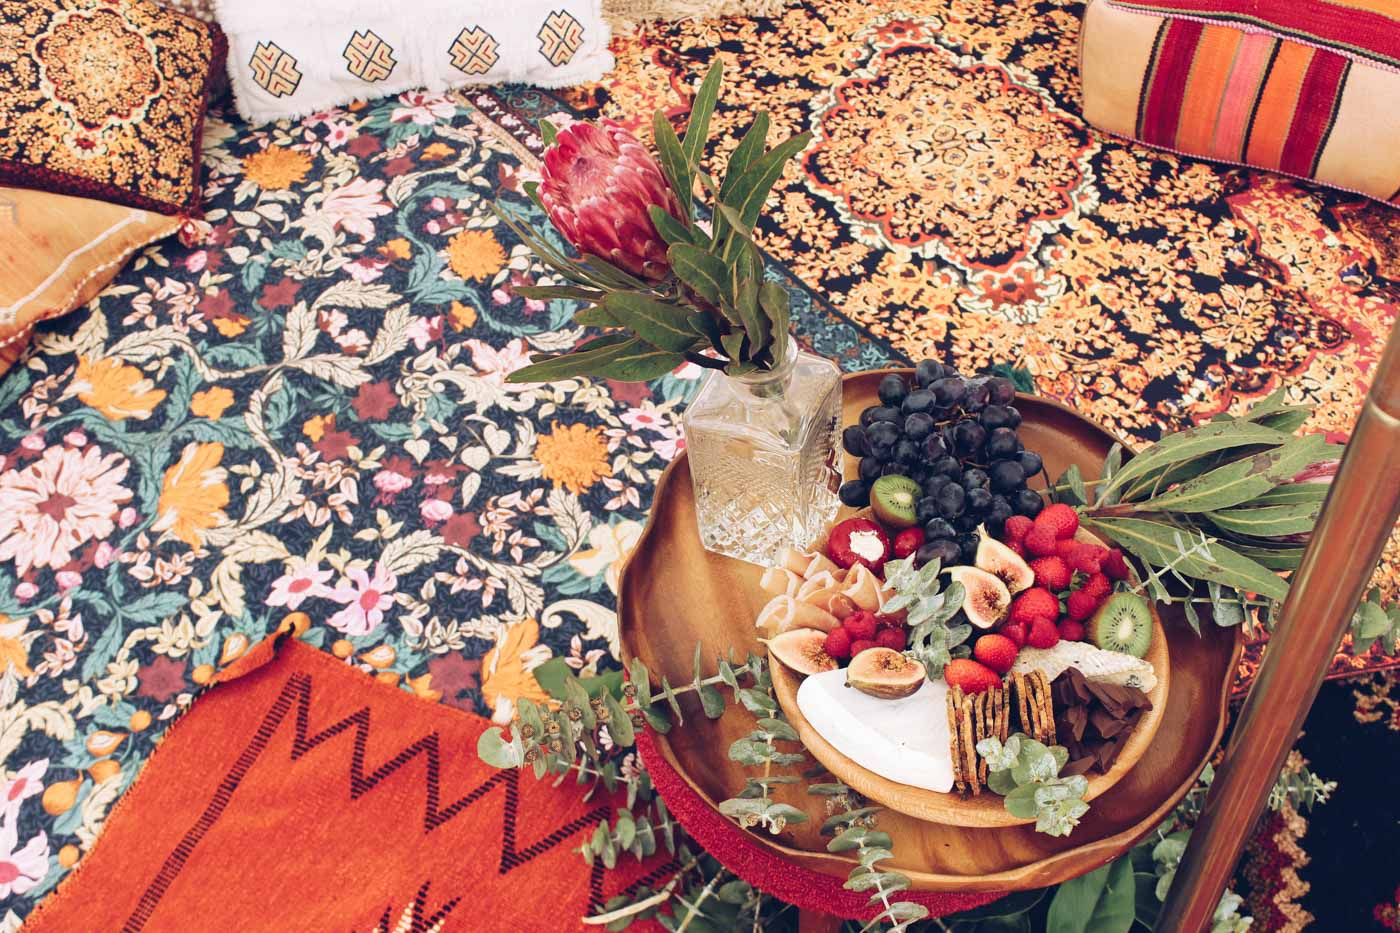 the_Collection_co_grazing_table_cairns_weddings_catering_grazing_platter_hire_pop_up_picnic_bell_tent_event_hire_styling-42-2.jpg